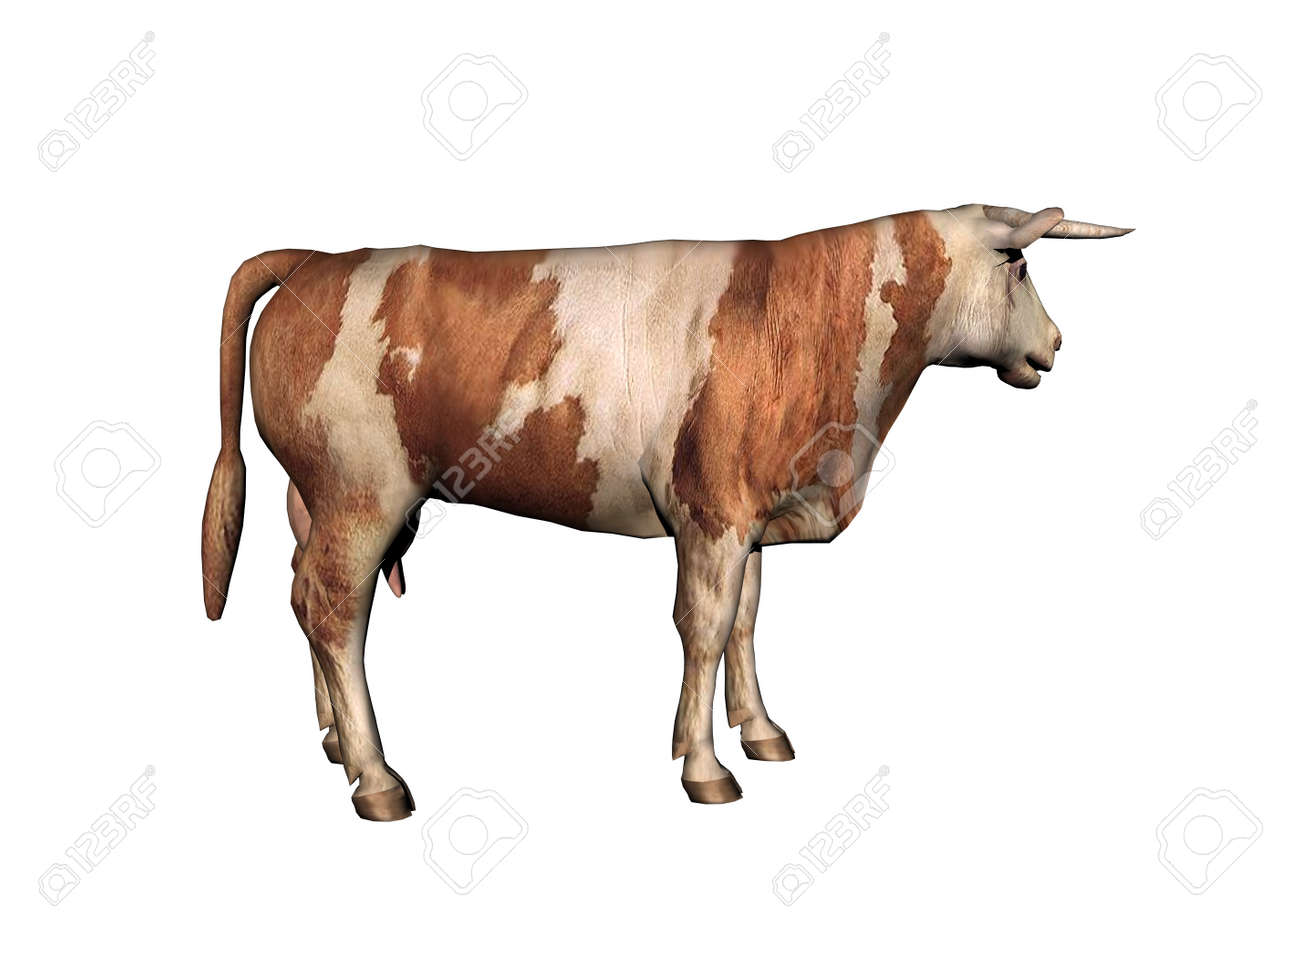 Cow as a meat supplier runs around in the pasture - 156477230